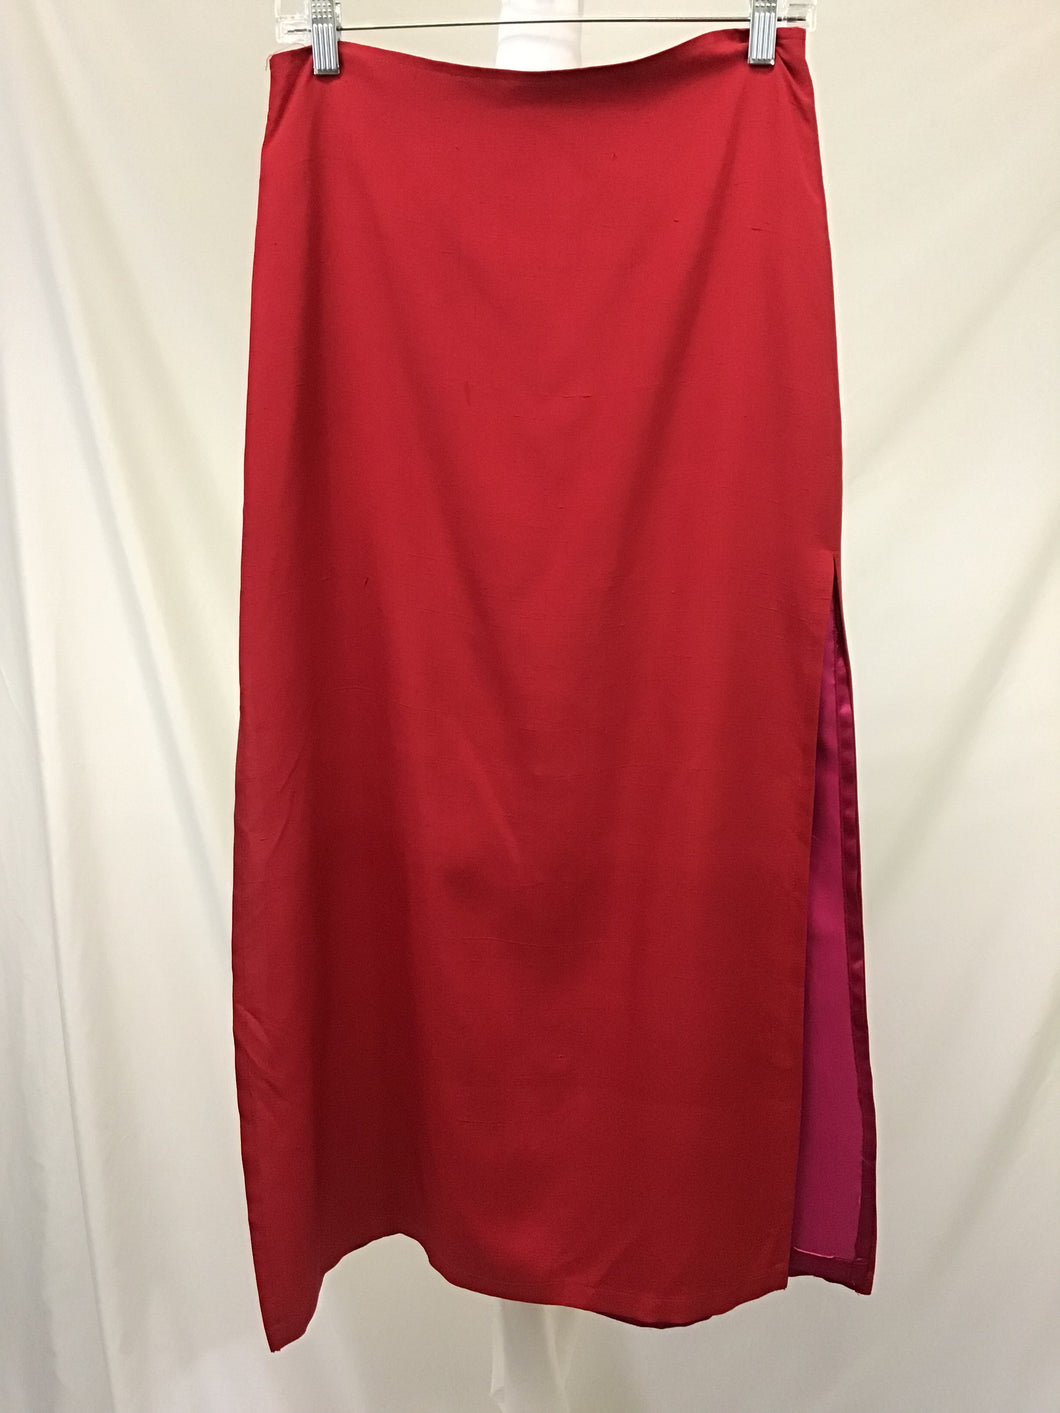 Delia Red Silk Skirt